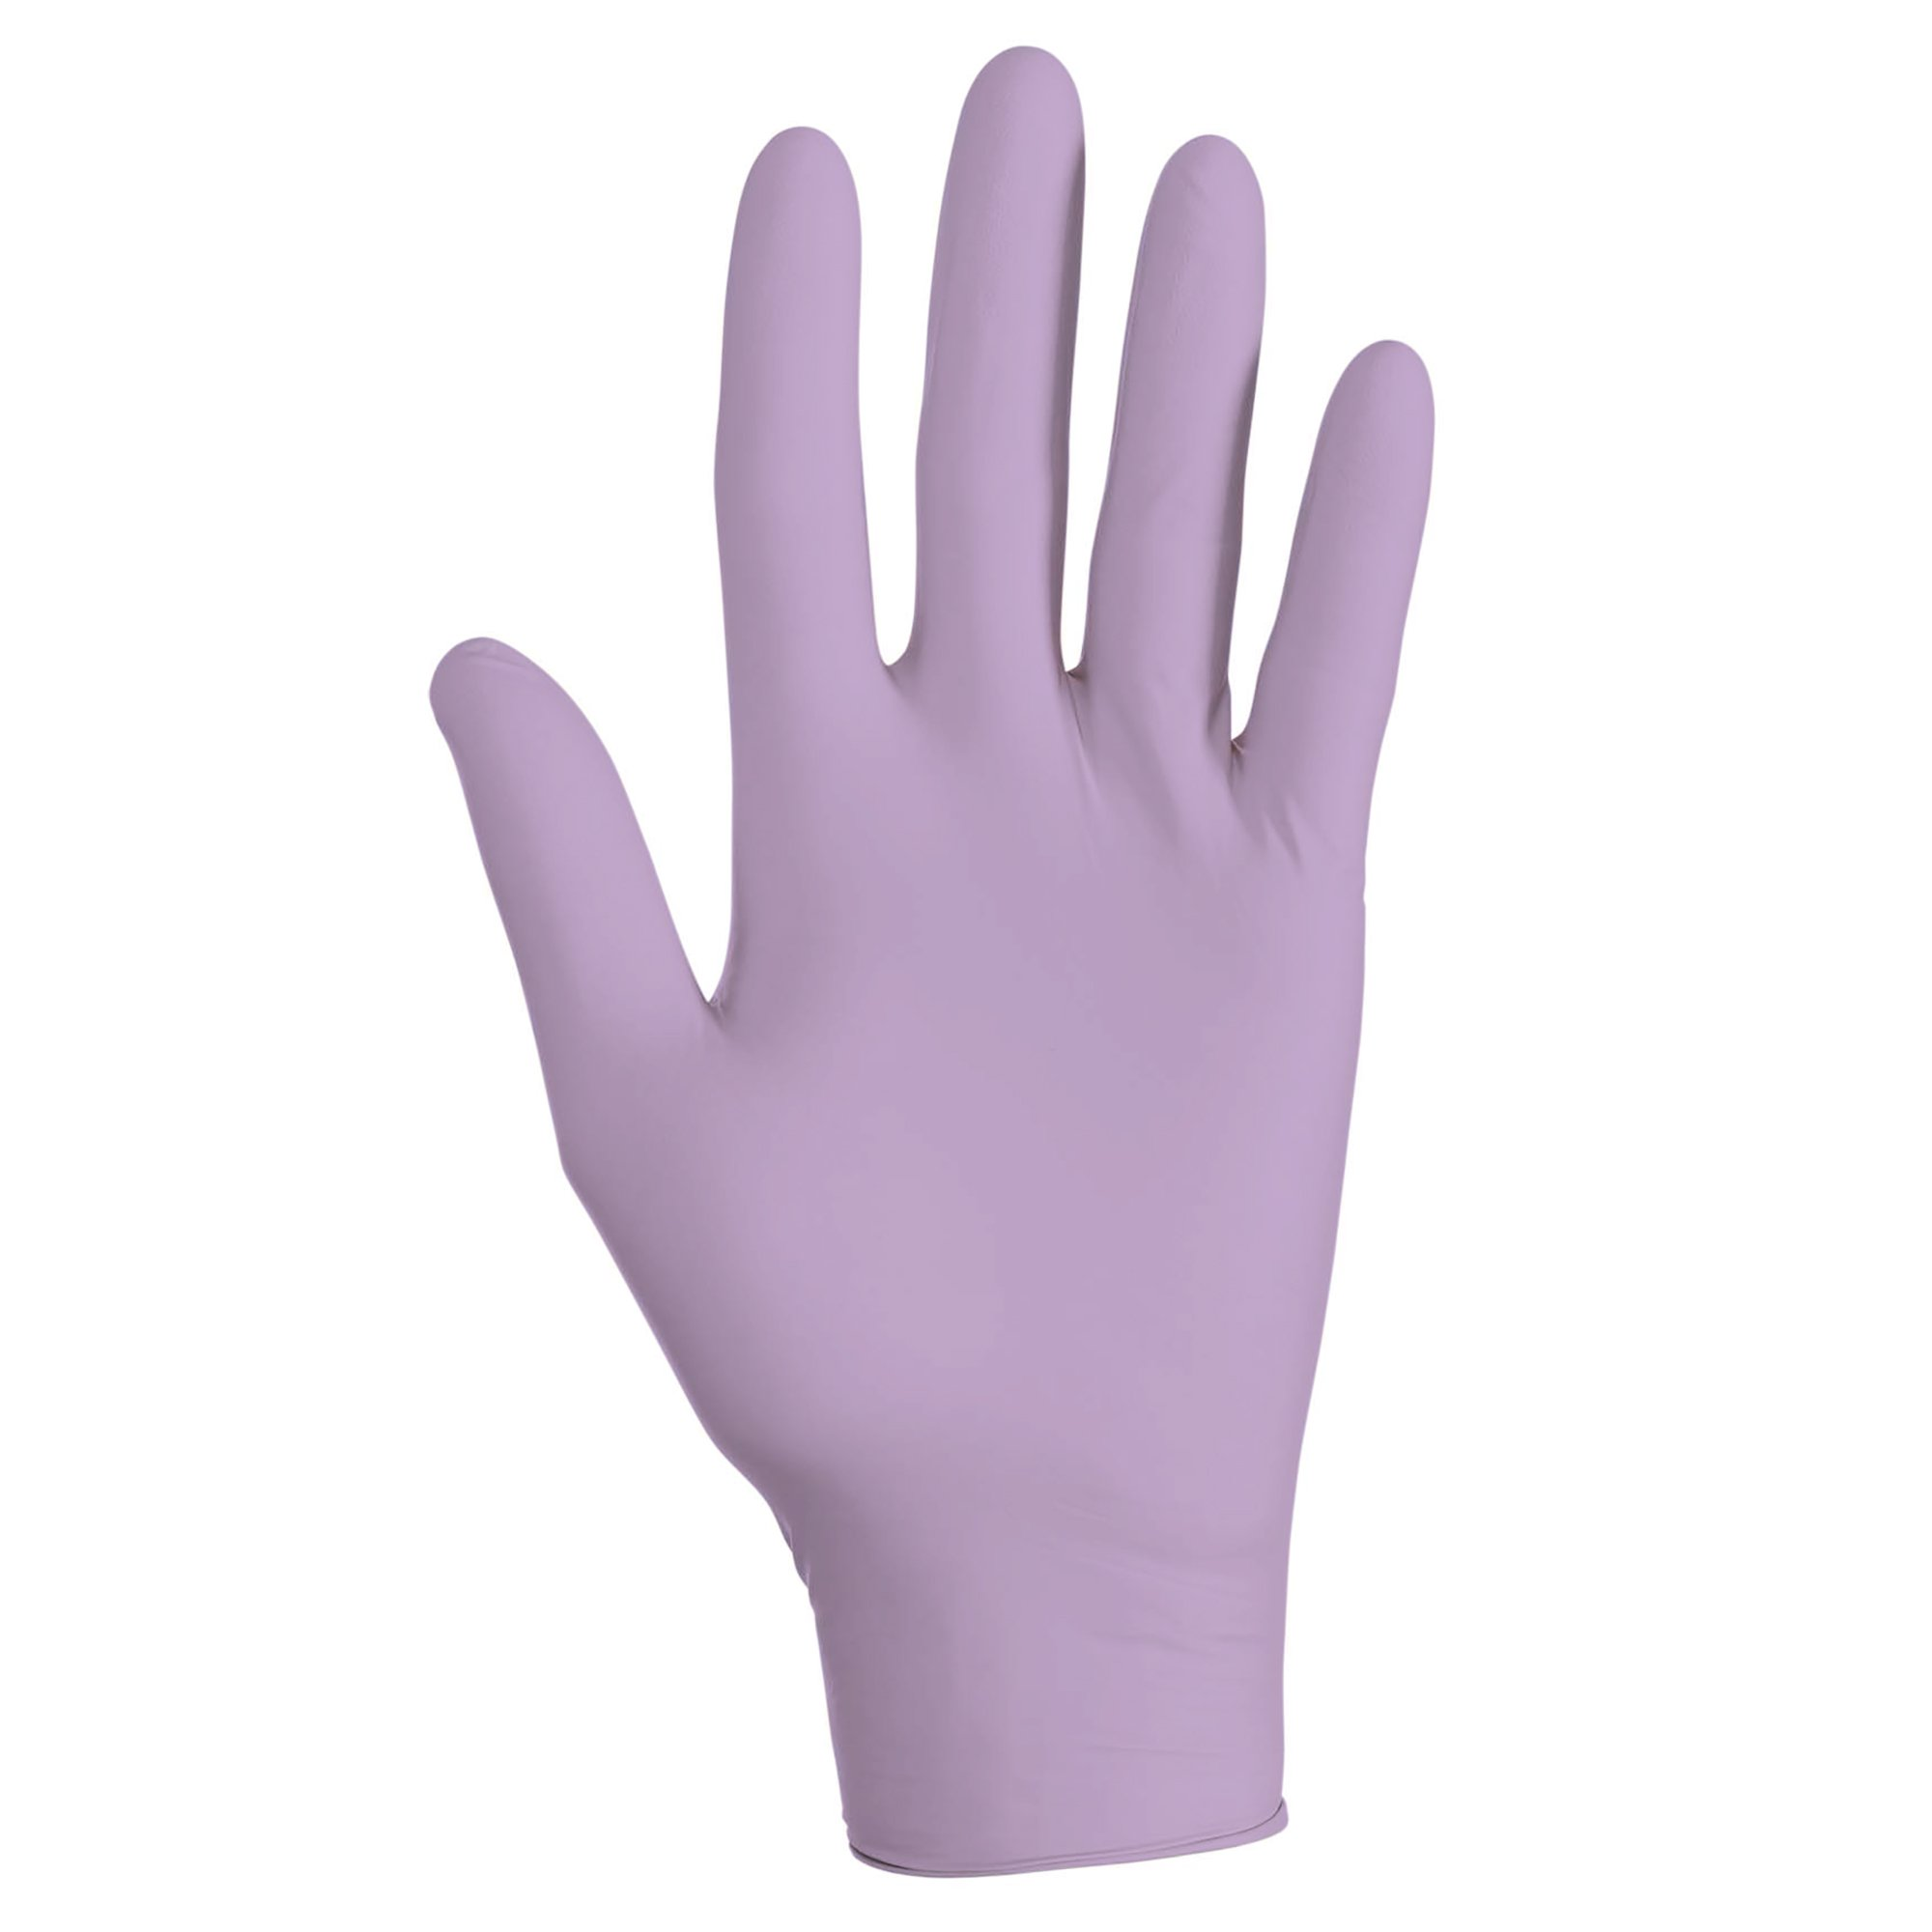 Halyard 52818 Nitrile Exam Gloves, Medium, Lavender (Pack of 250) Pack of 2 by KIMBERLY-CLARK  (Image #1)